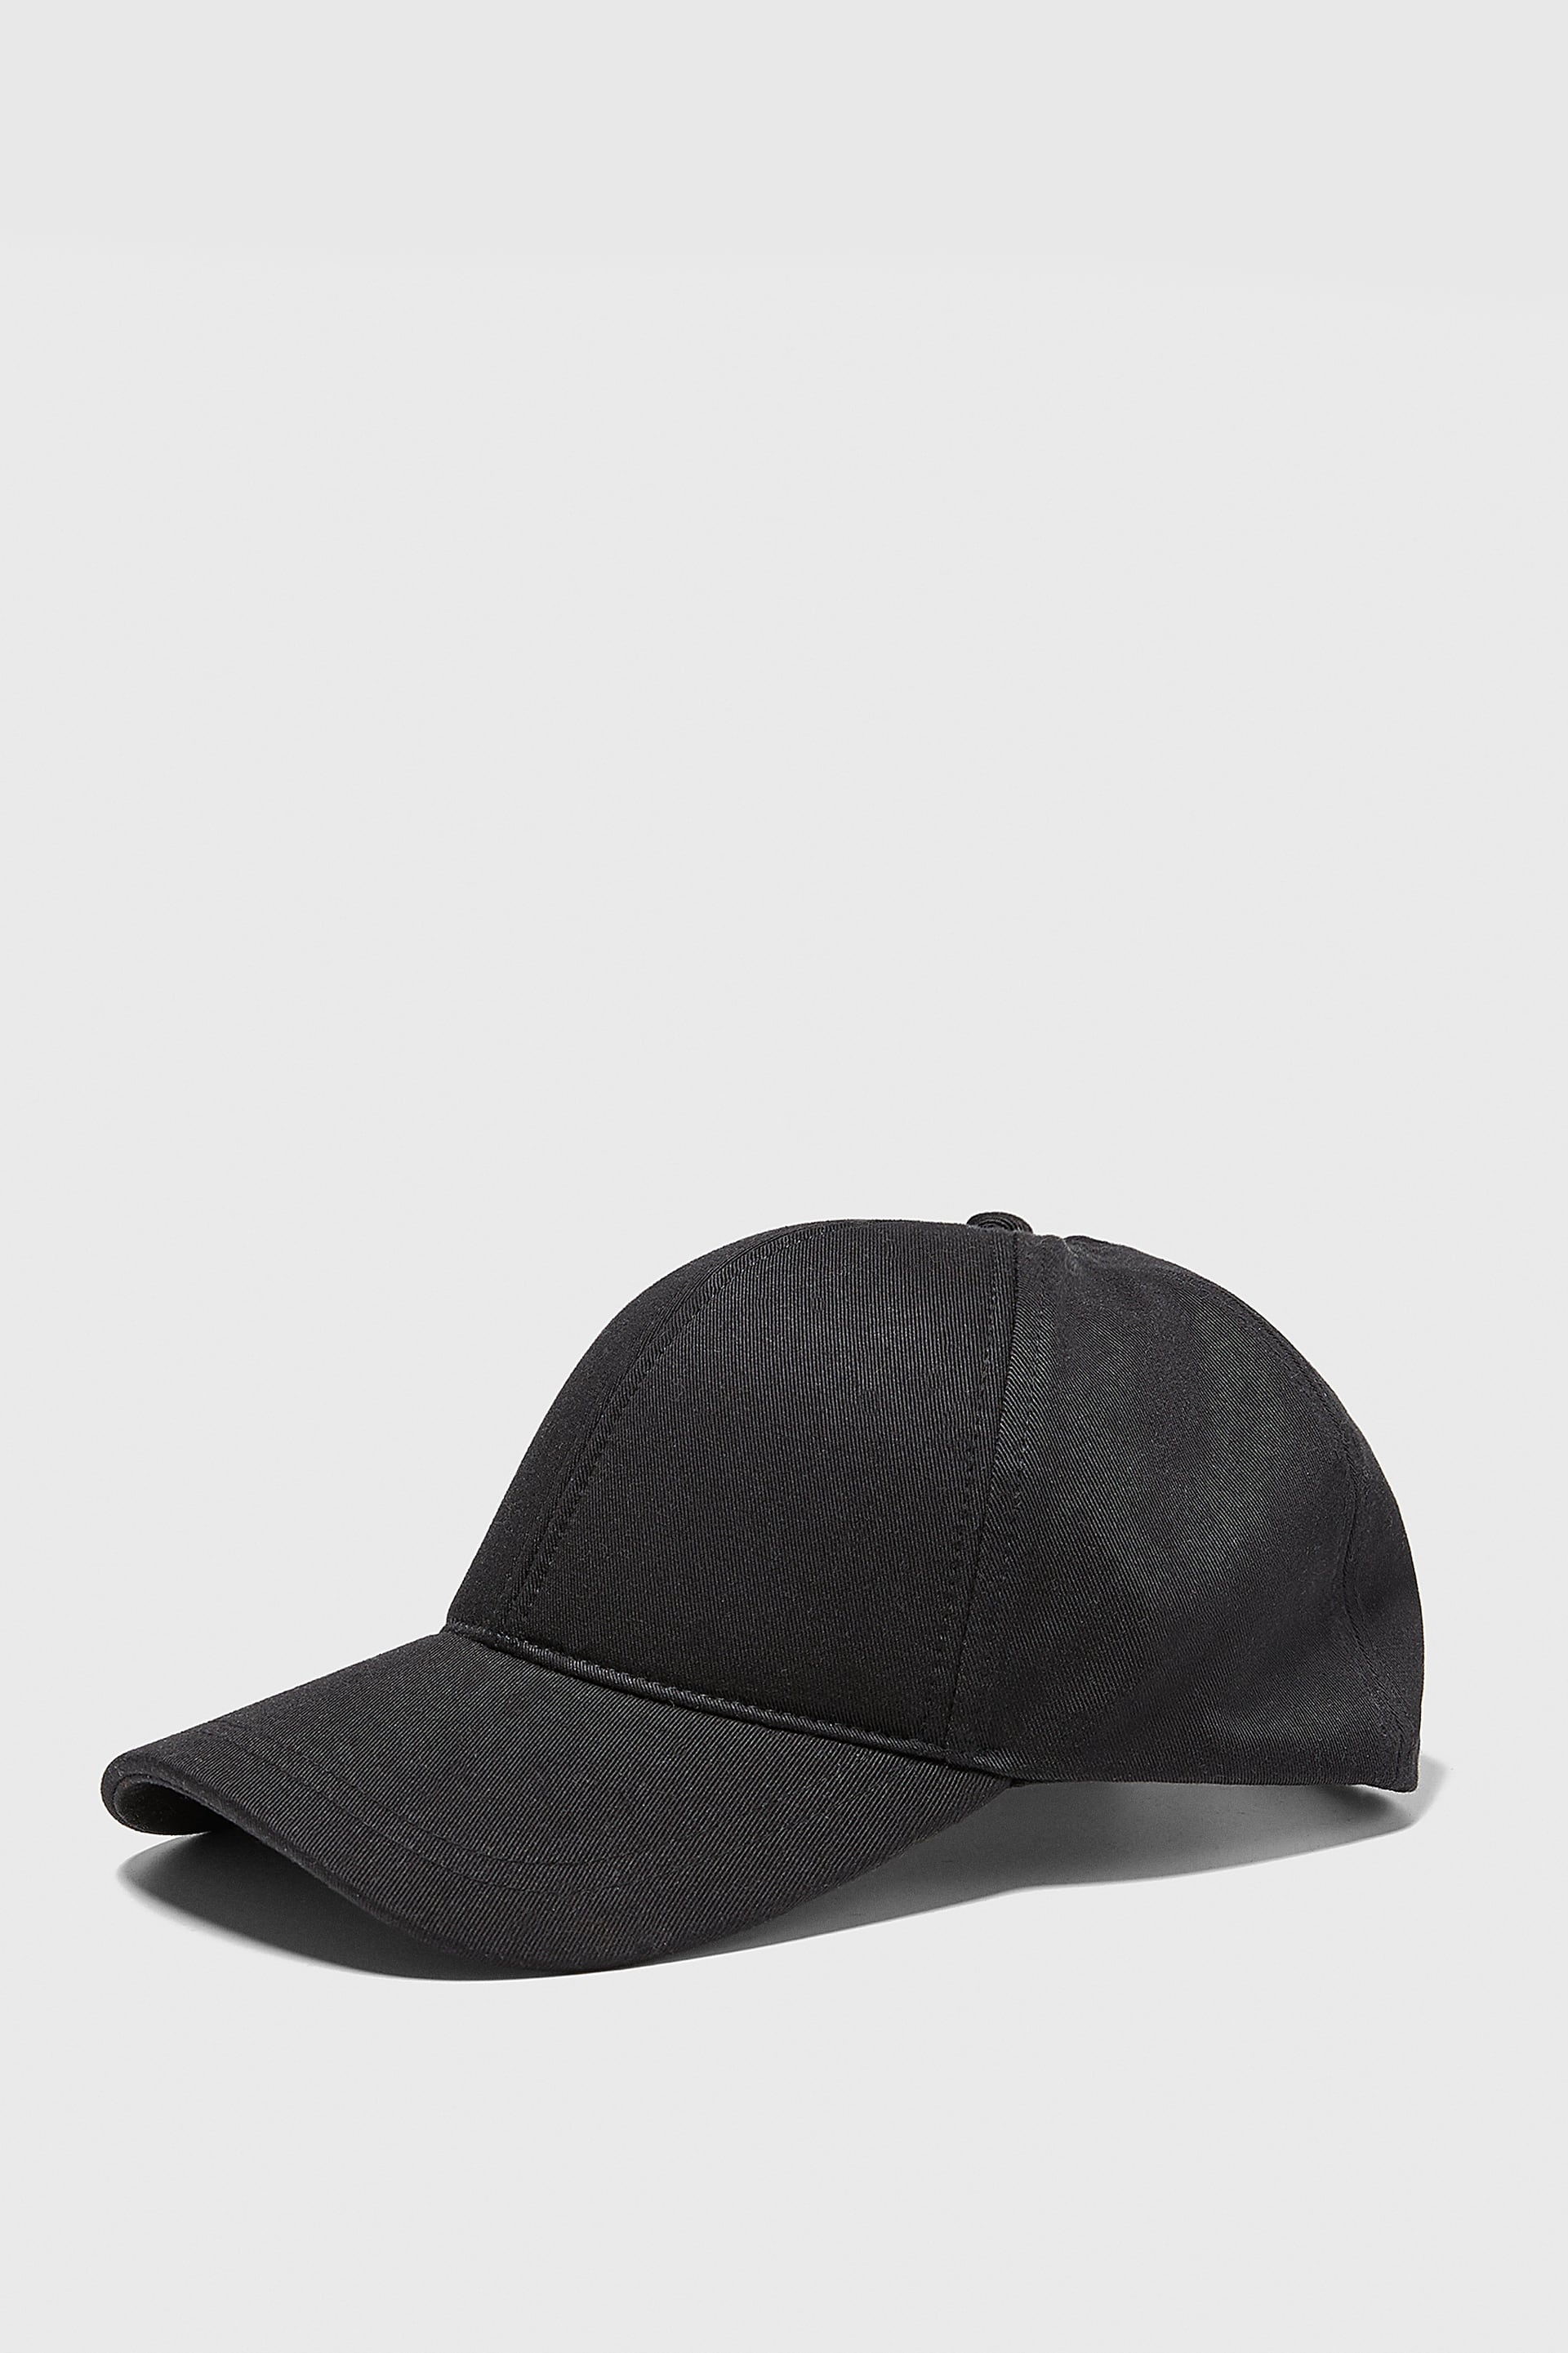 Basic Cap by Zara